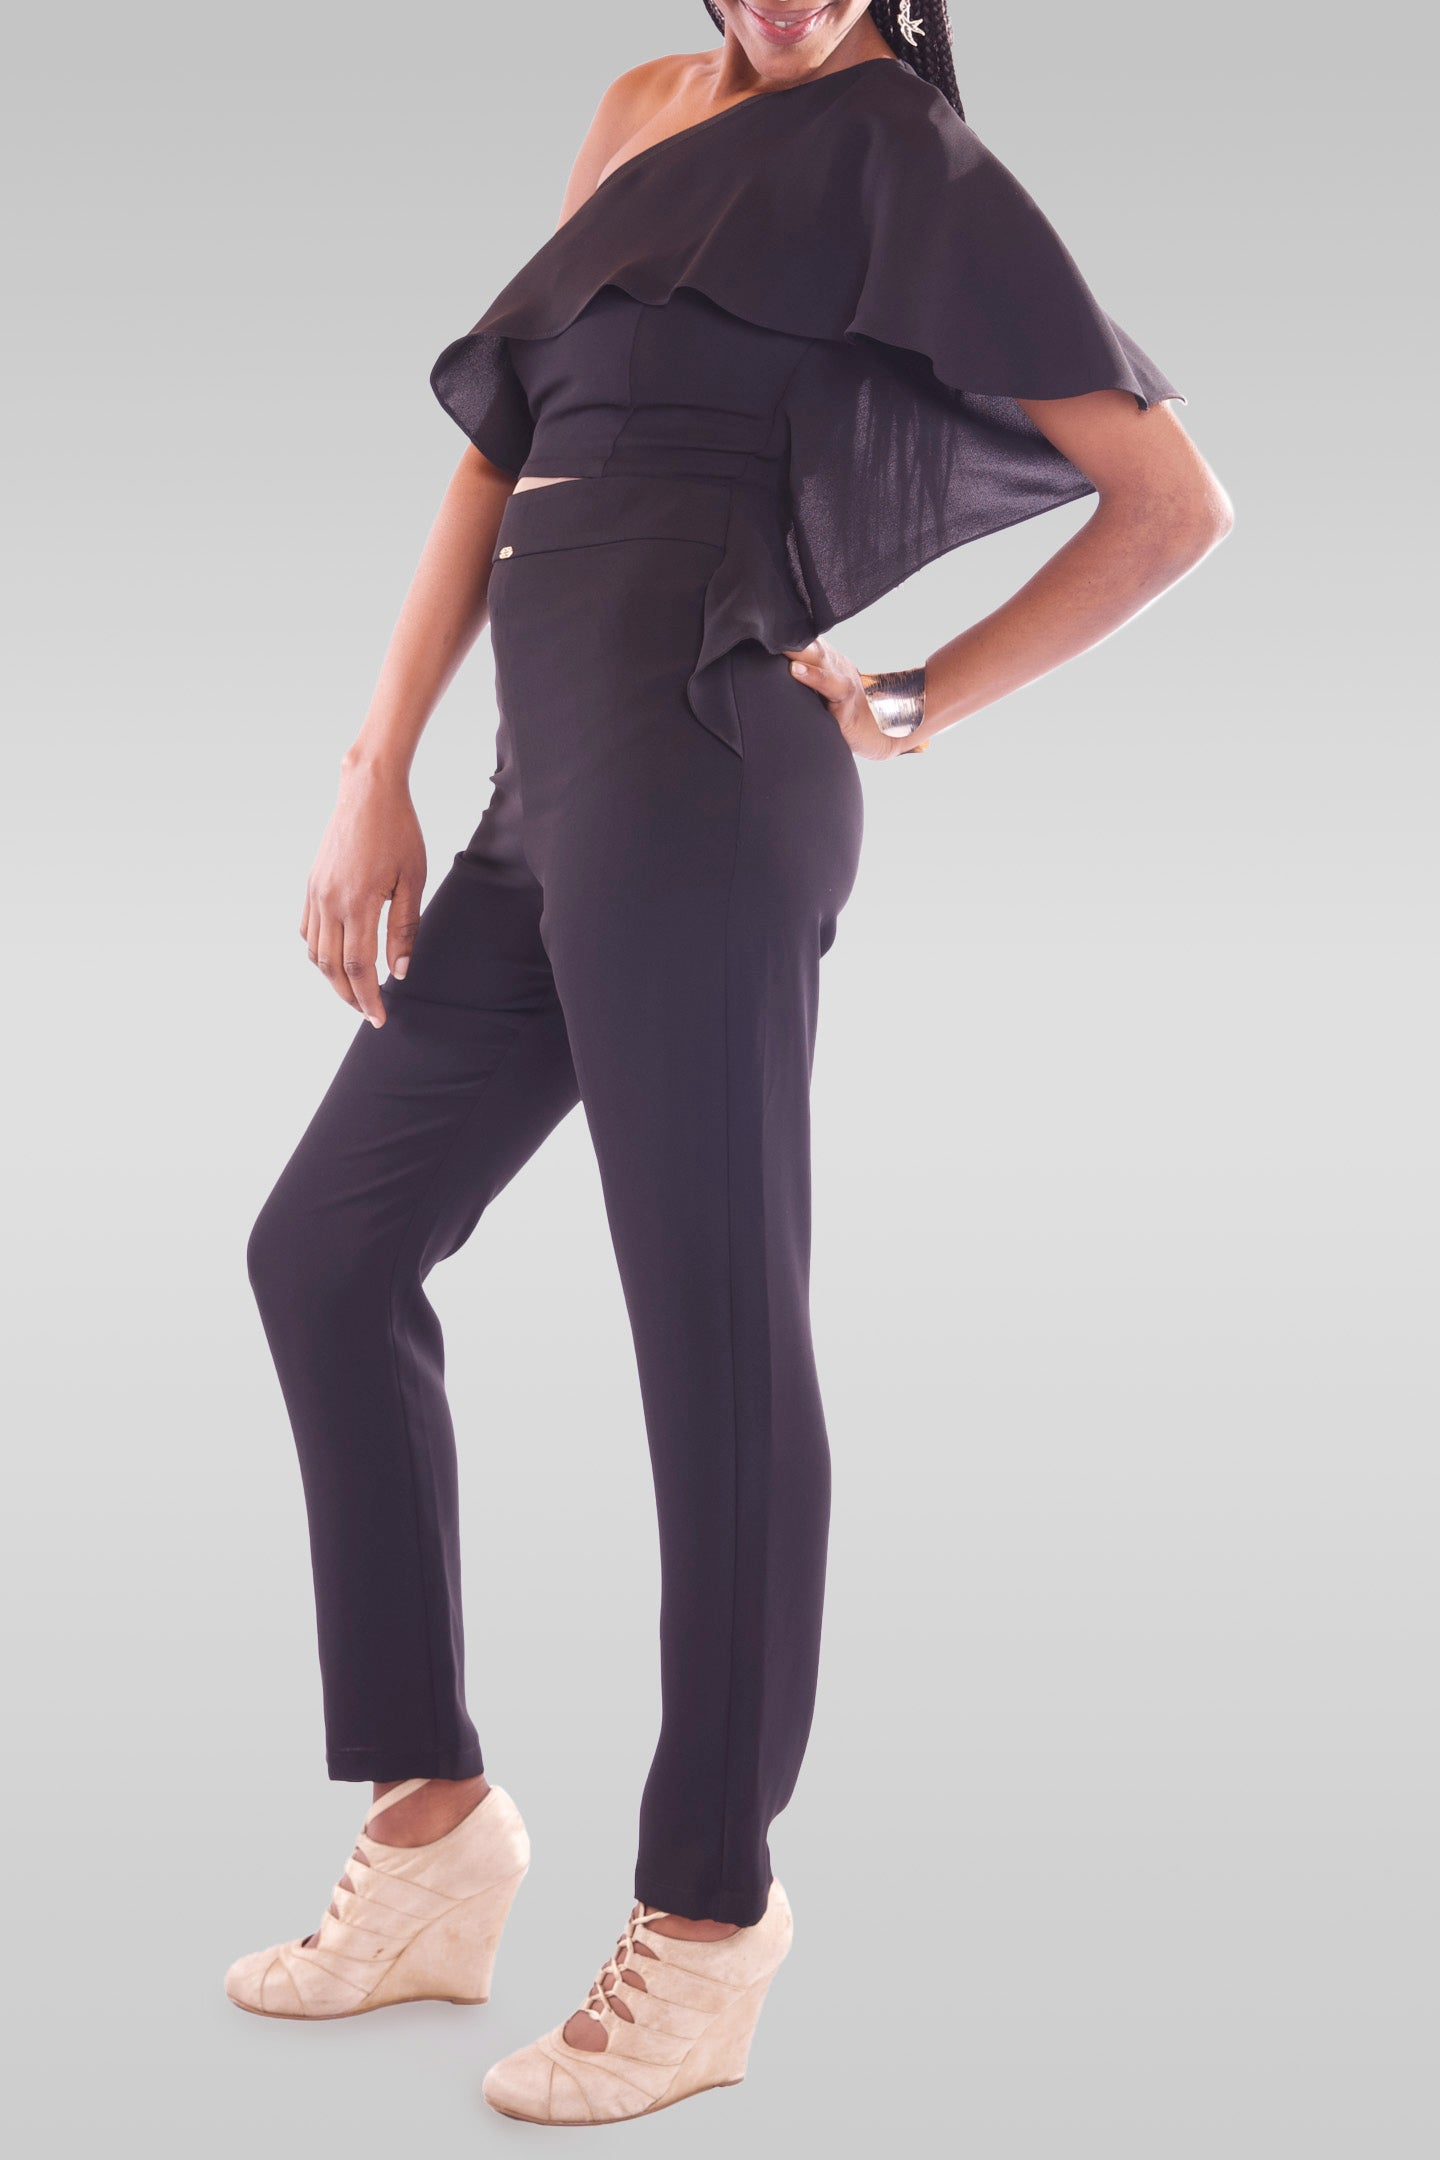 Women One Off Shoulder Maxi Black Jumpsuit - Hillmarten